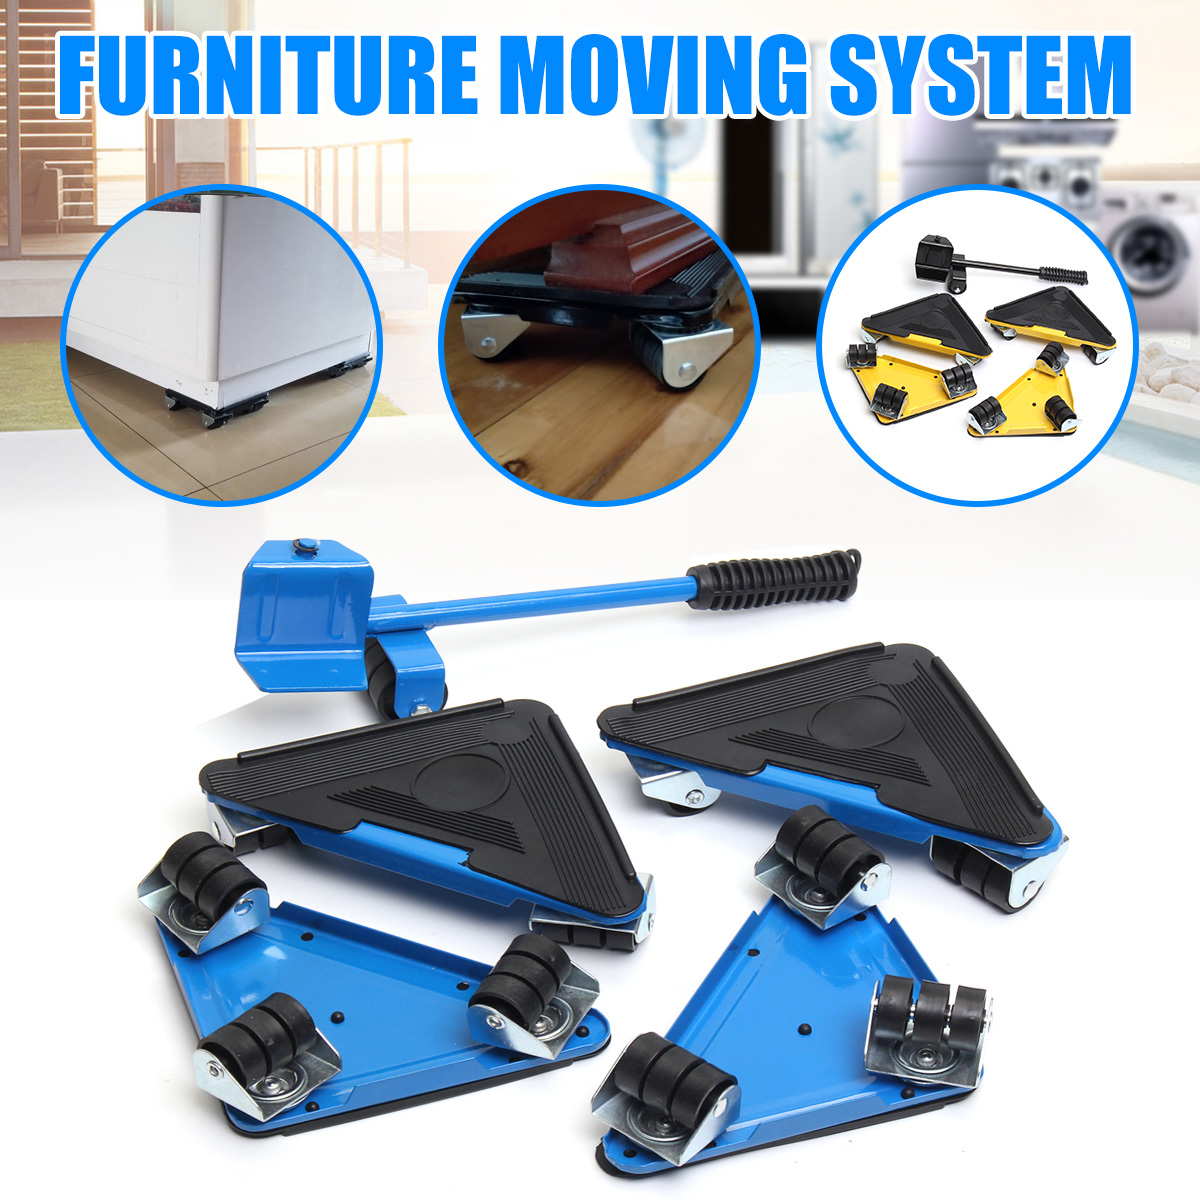 Durable Furniture Moving System With Lifter Tool And 3 Wheels Stable Furniture Moving Heavy Stuffs Moving Tool Home Utilities